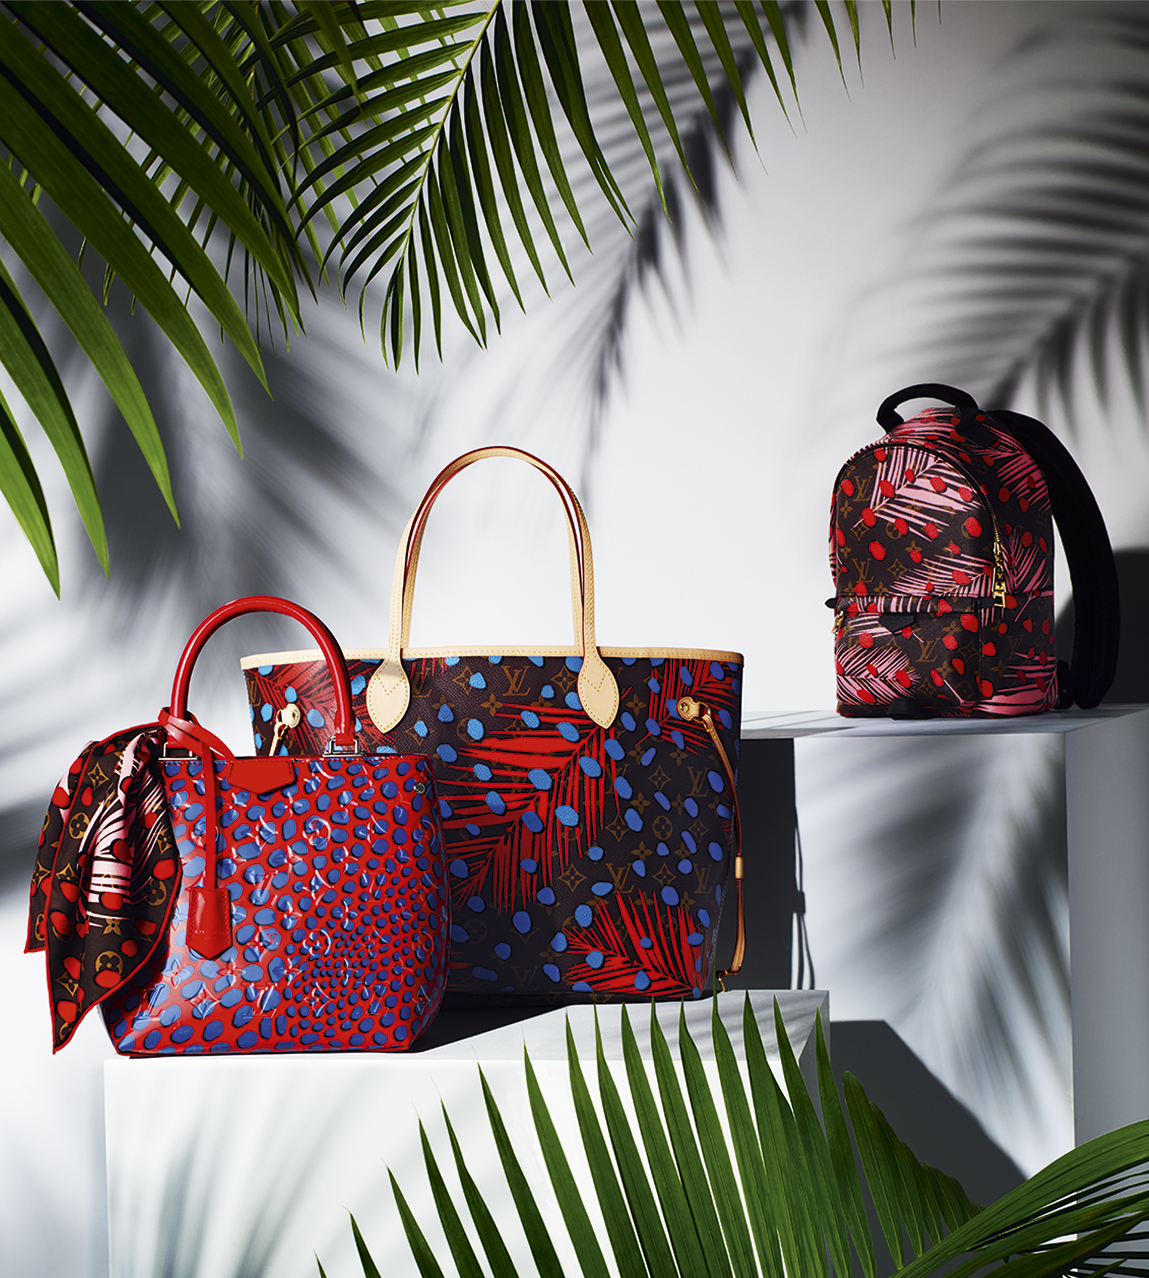 e9035fa62ea9 Louis Vuitton Tropical Journey Collection